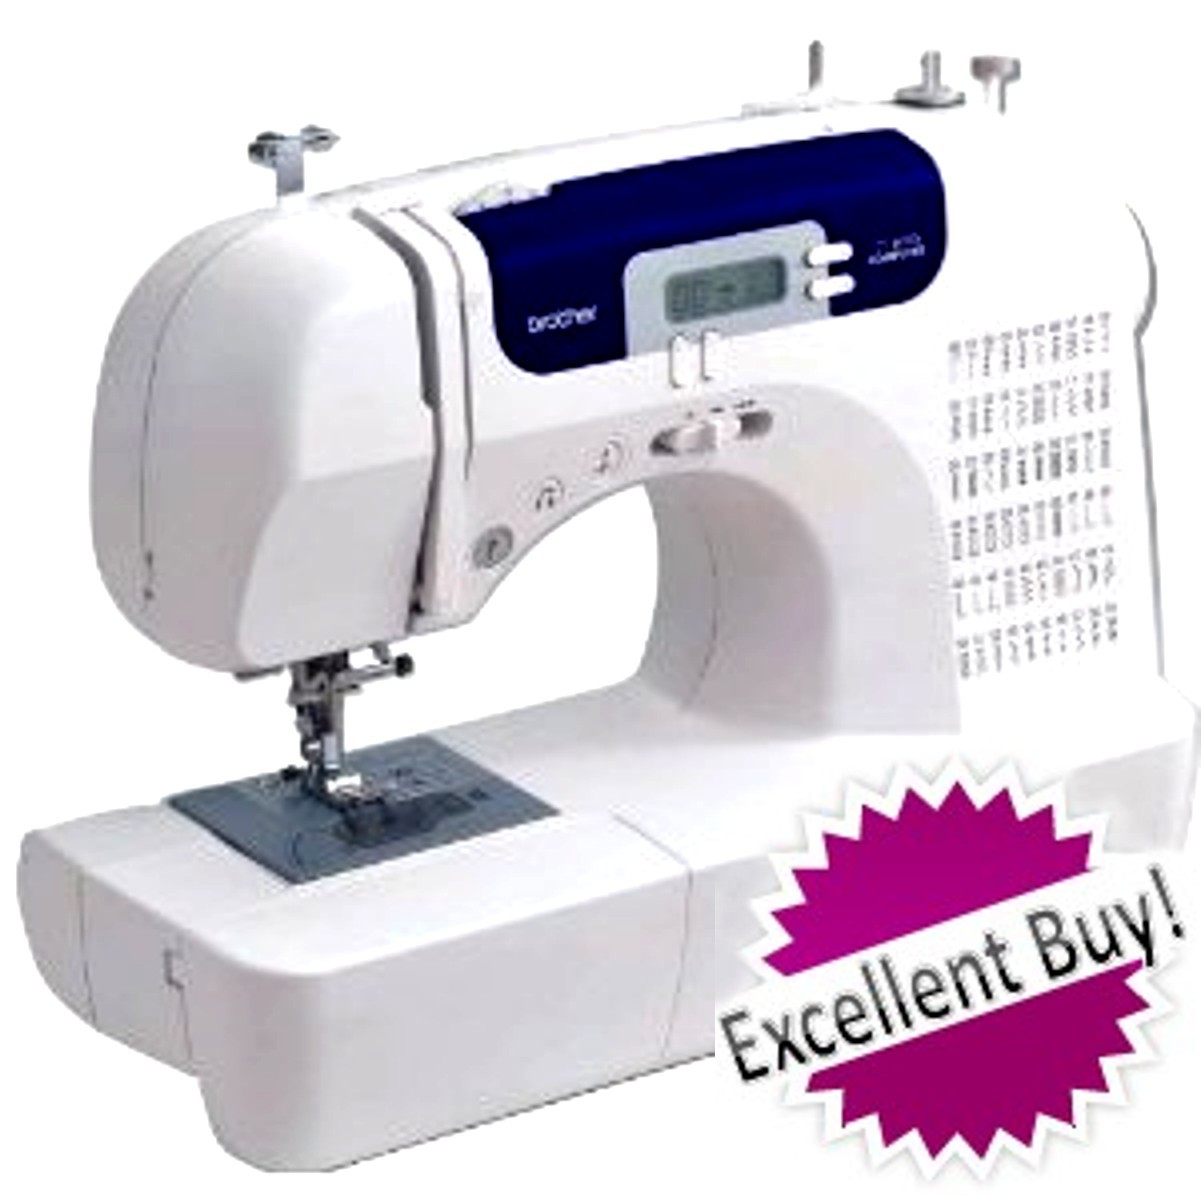 Fullsize Of Brother Sewing Machine Walmart